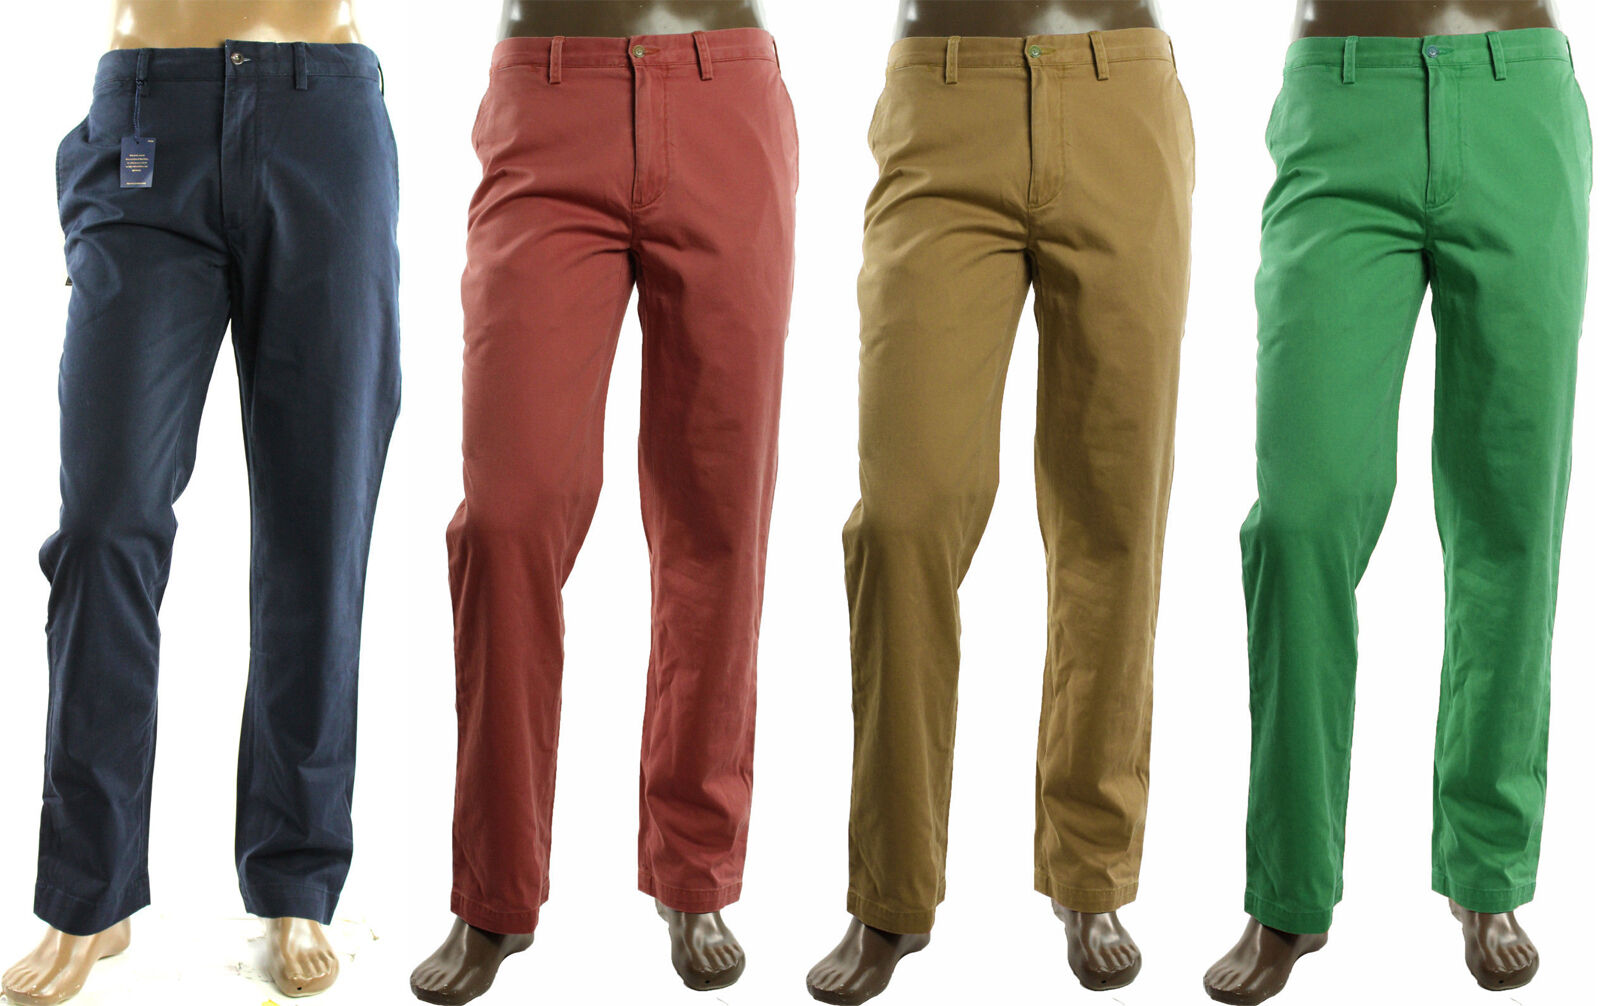 info for 468f8 3611c NEW MENS POLO RALPH LAUREN FLAT FRONT CLASSIC FIT CASUAL ...